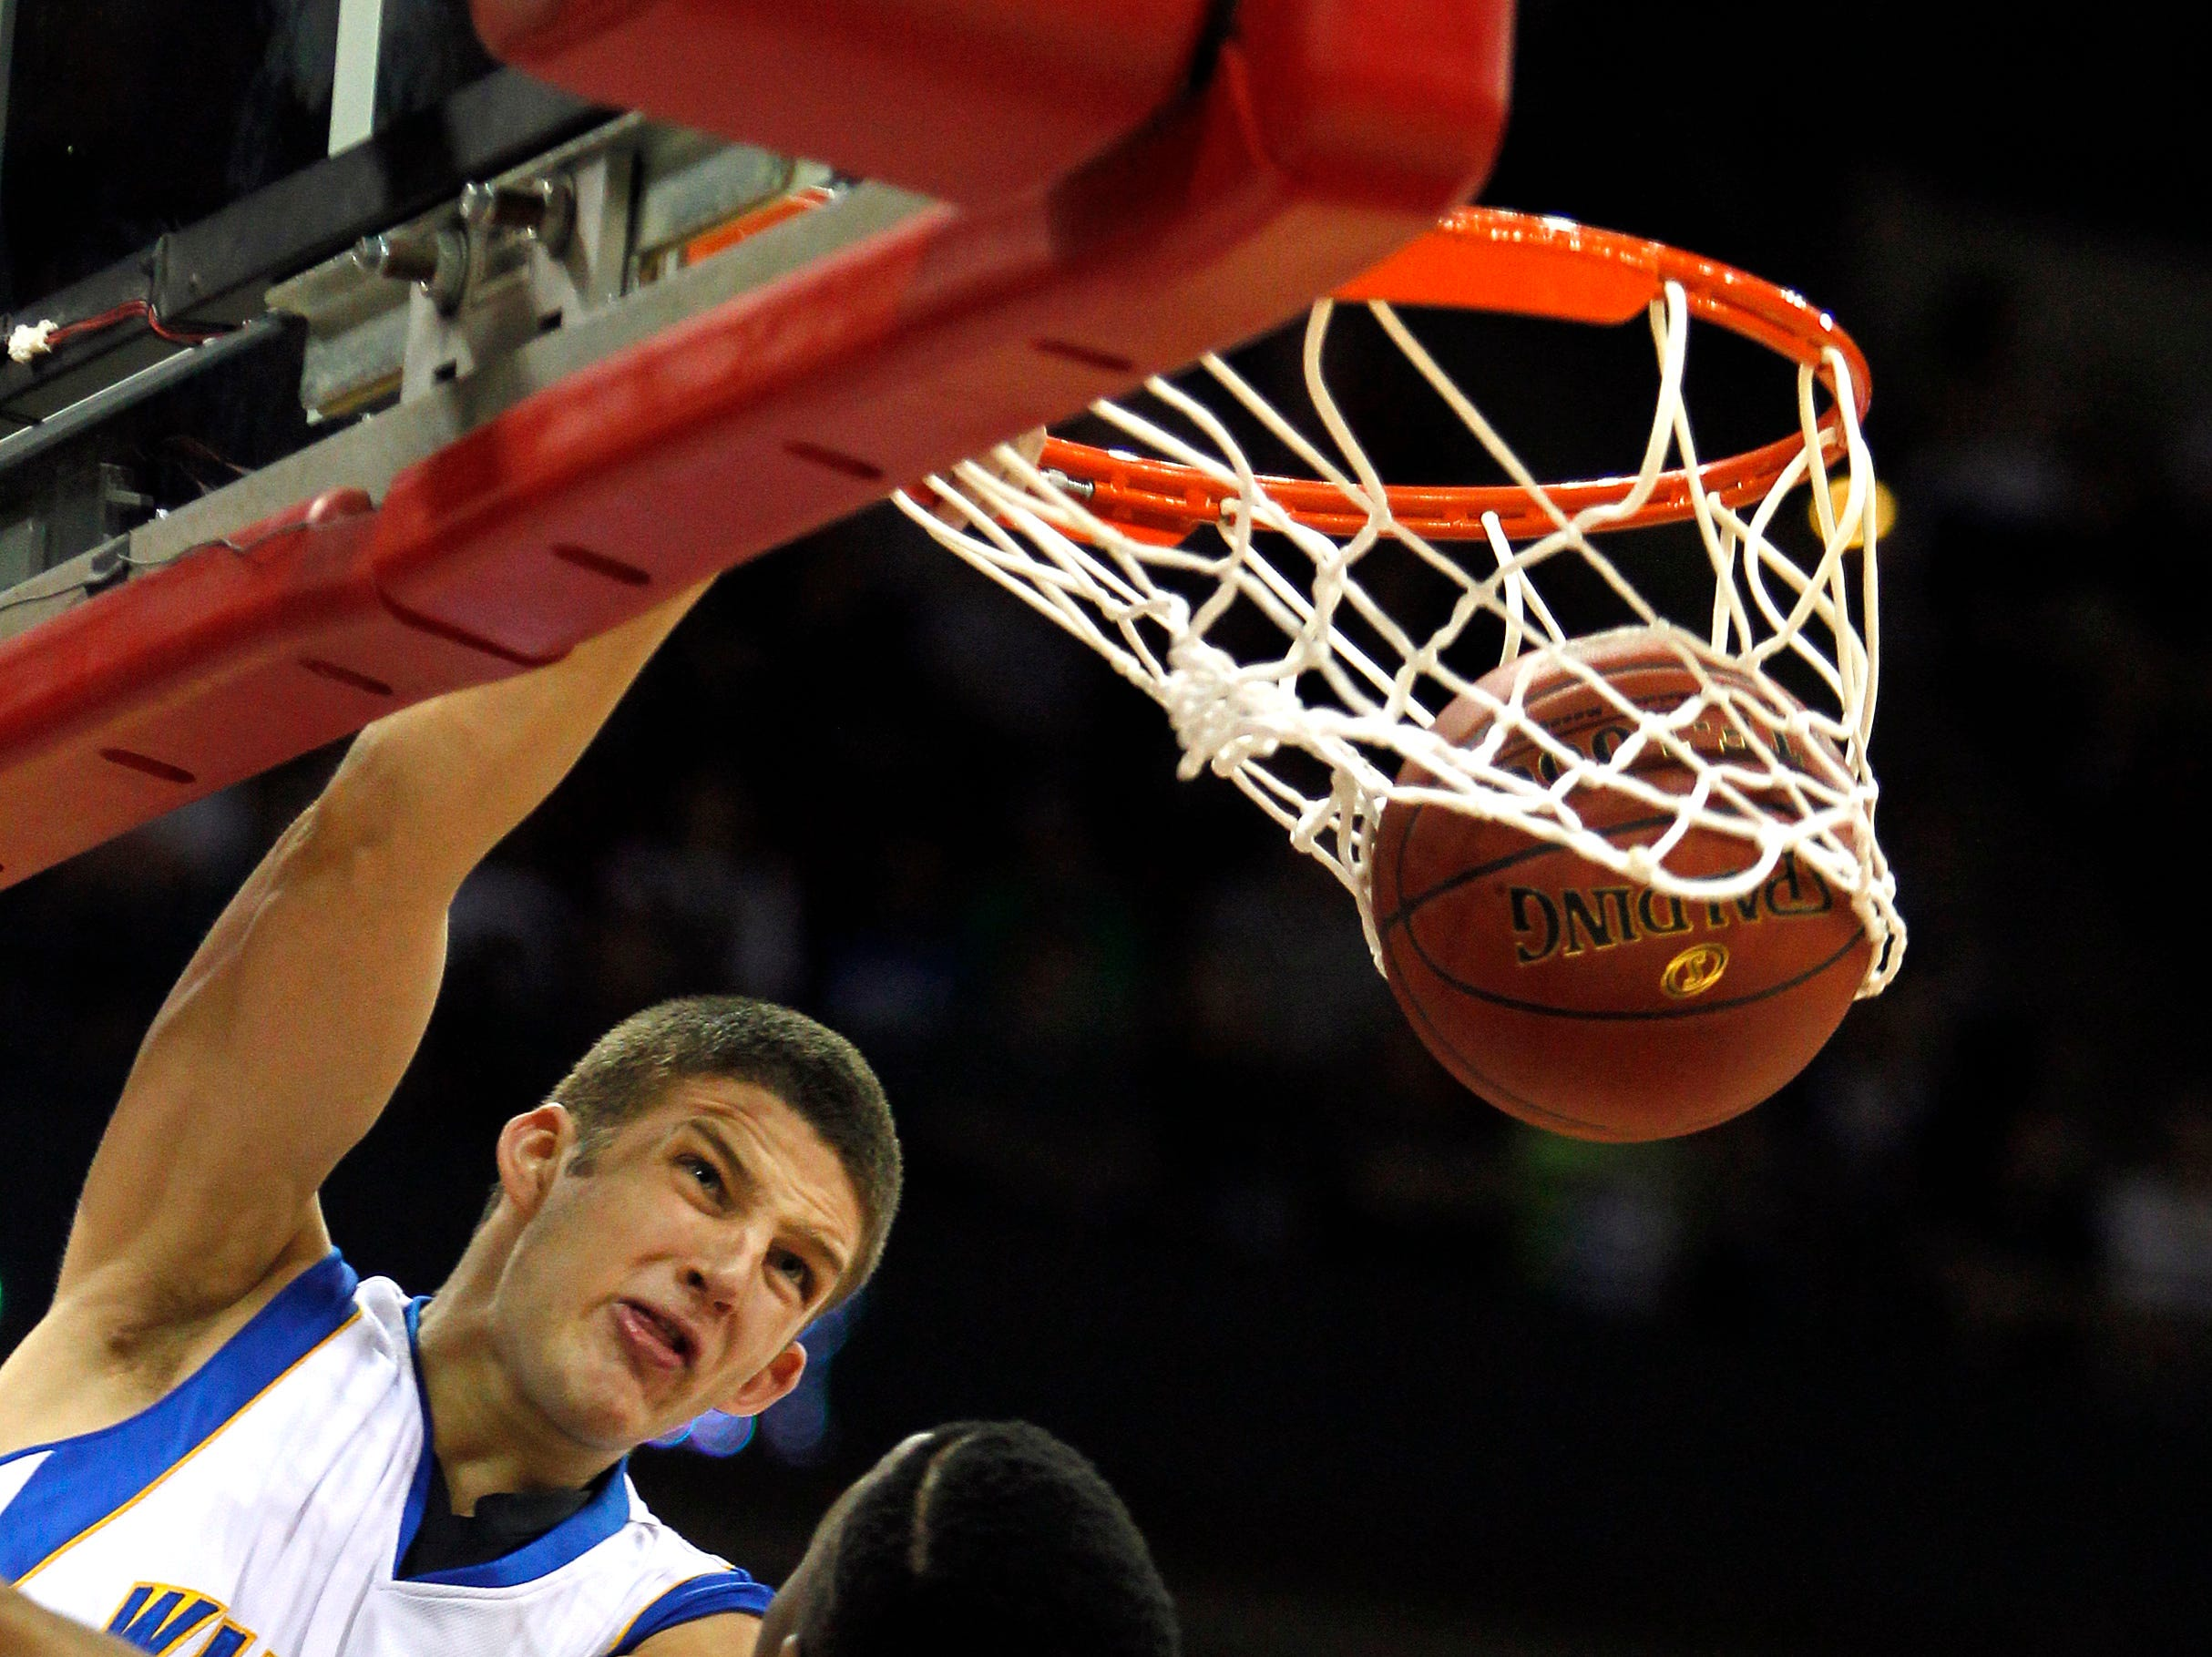 Germantown's Zak Showalter takes the opening tip for a dunk over Madison Memorial's #30 Jamar Morris at the WIAA boys state basketball tournament held at the Kohl Center in Madison, WI Friday March 16, 2012.